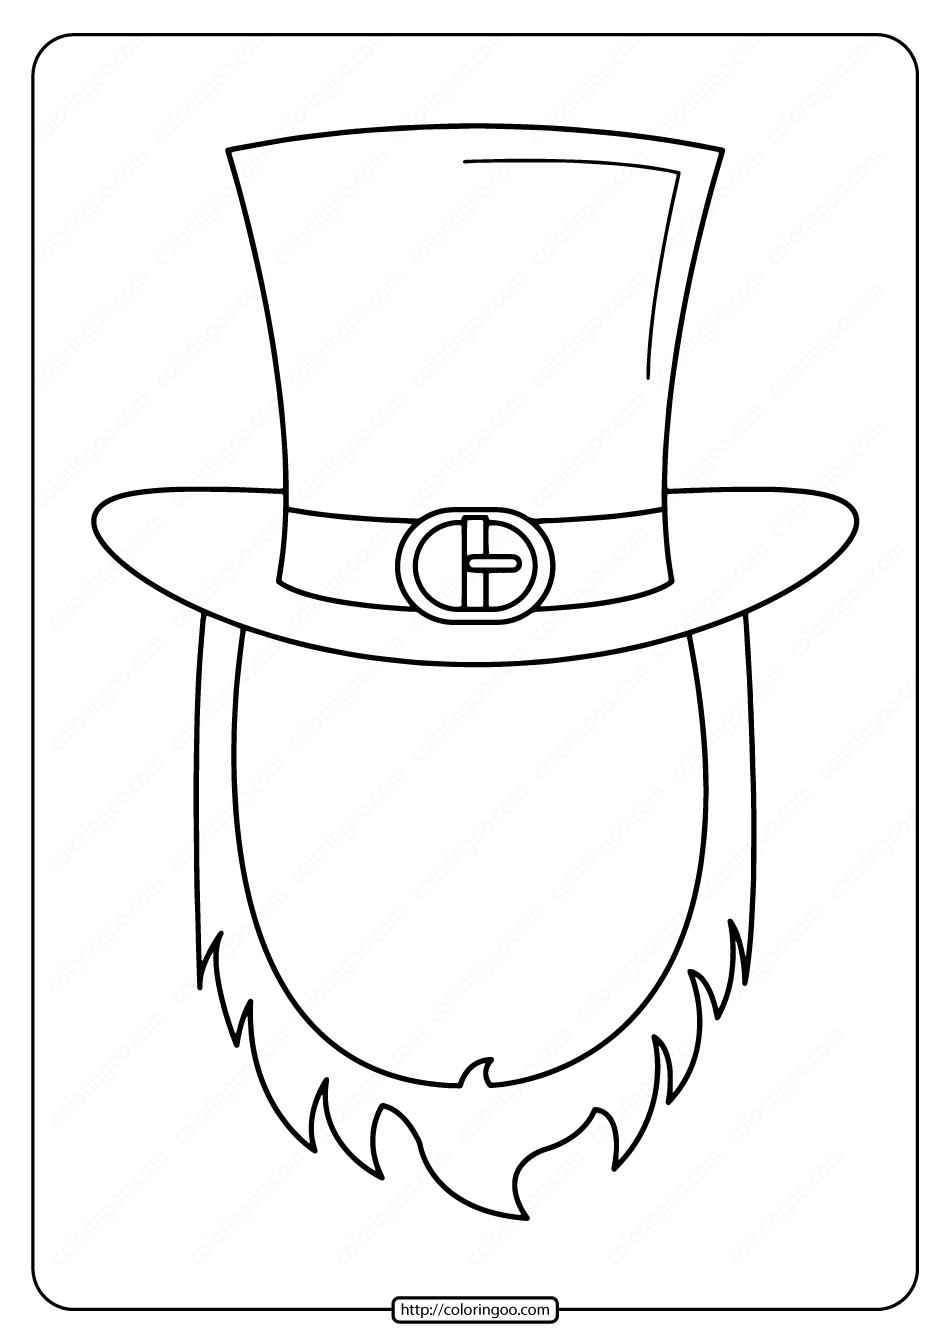 Free Printable Leprechaun Mask Frame Coloring